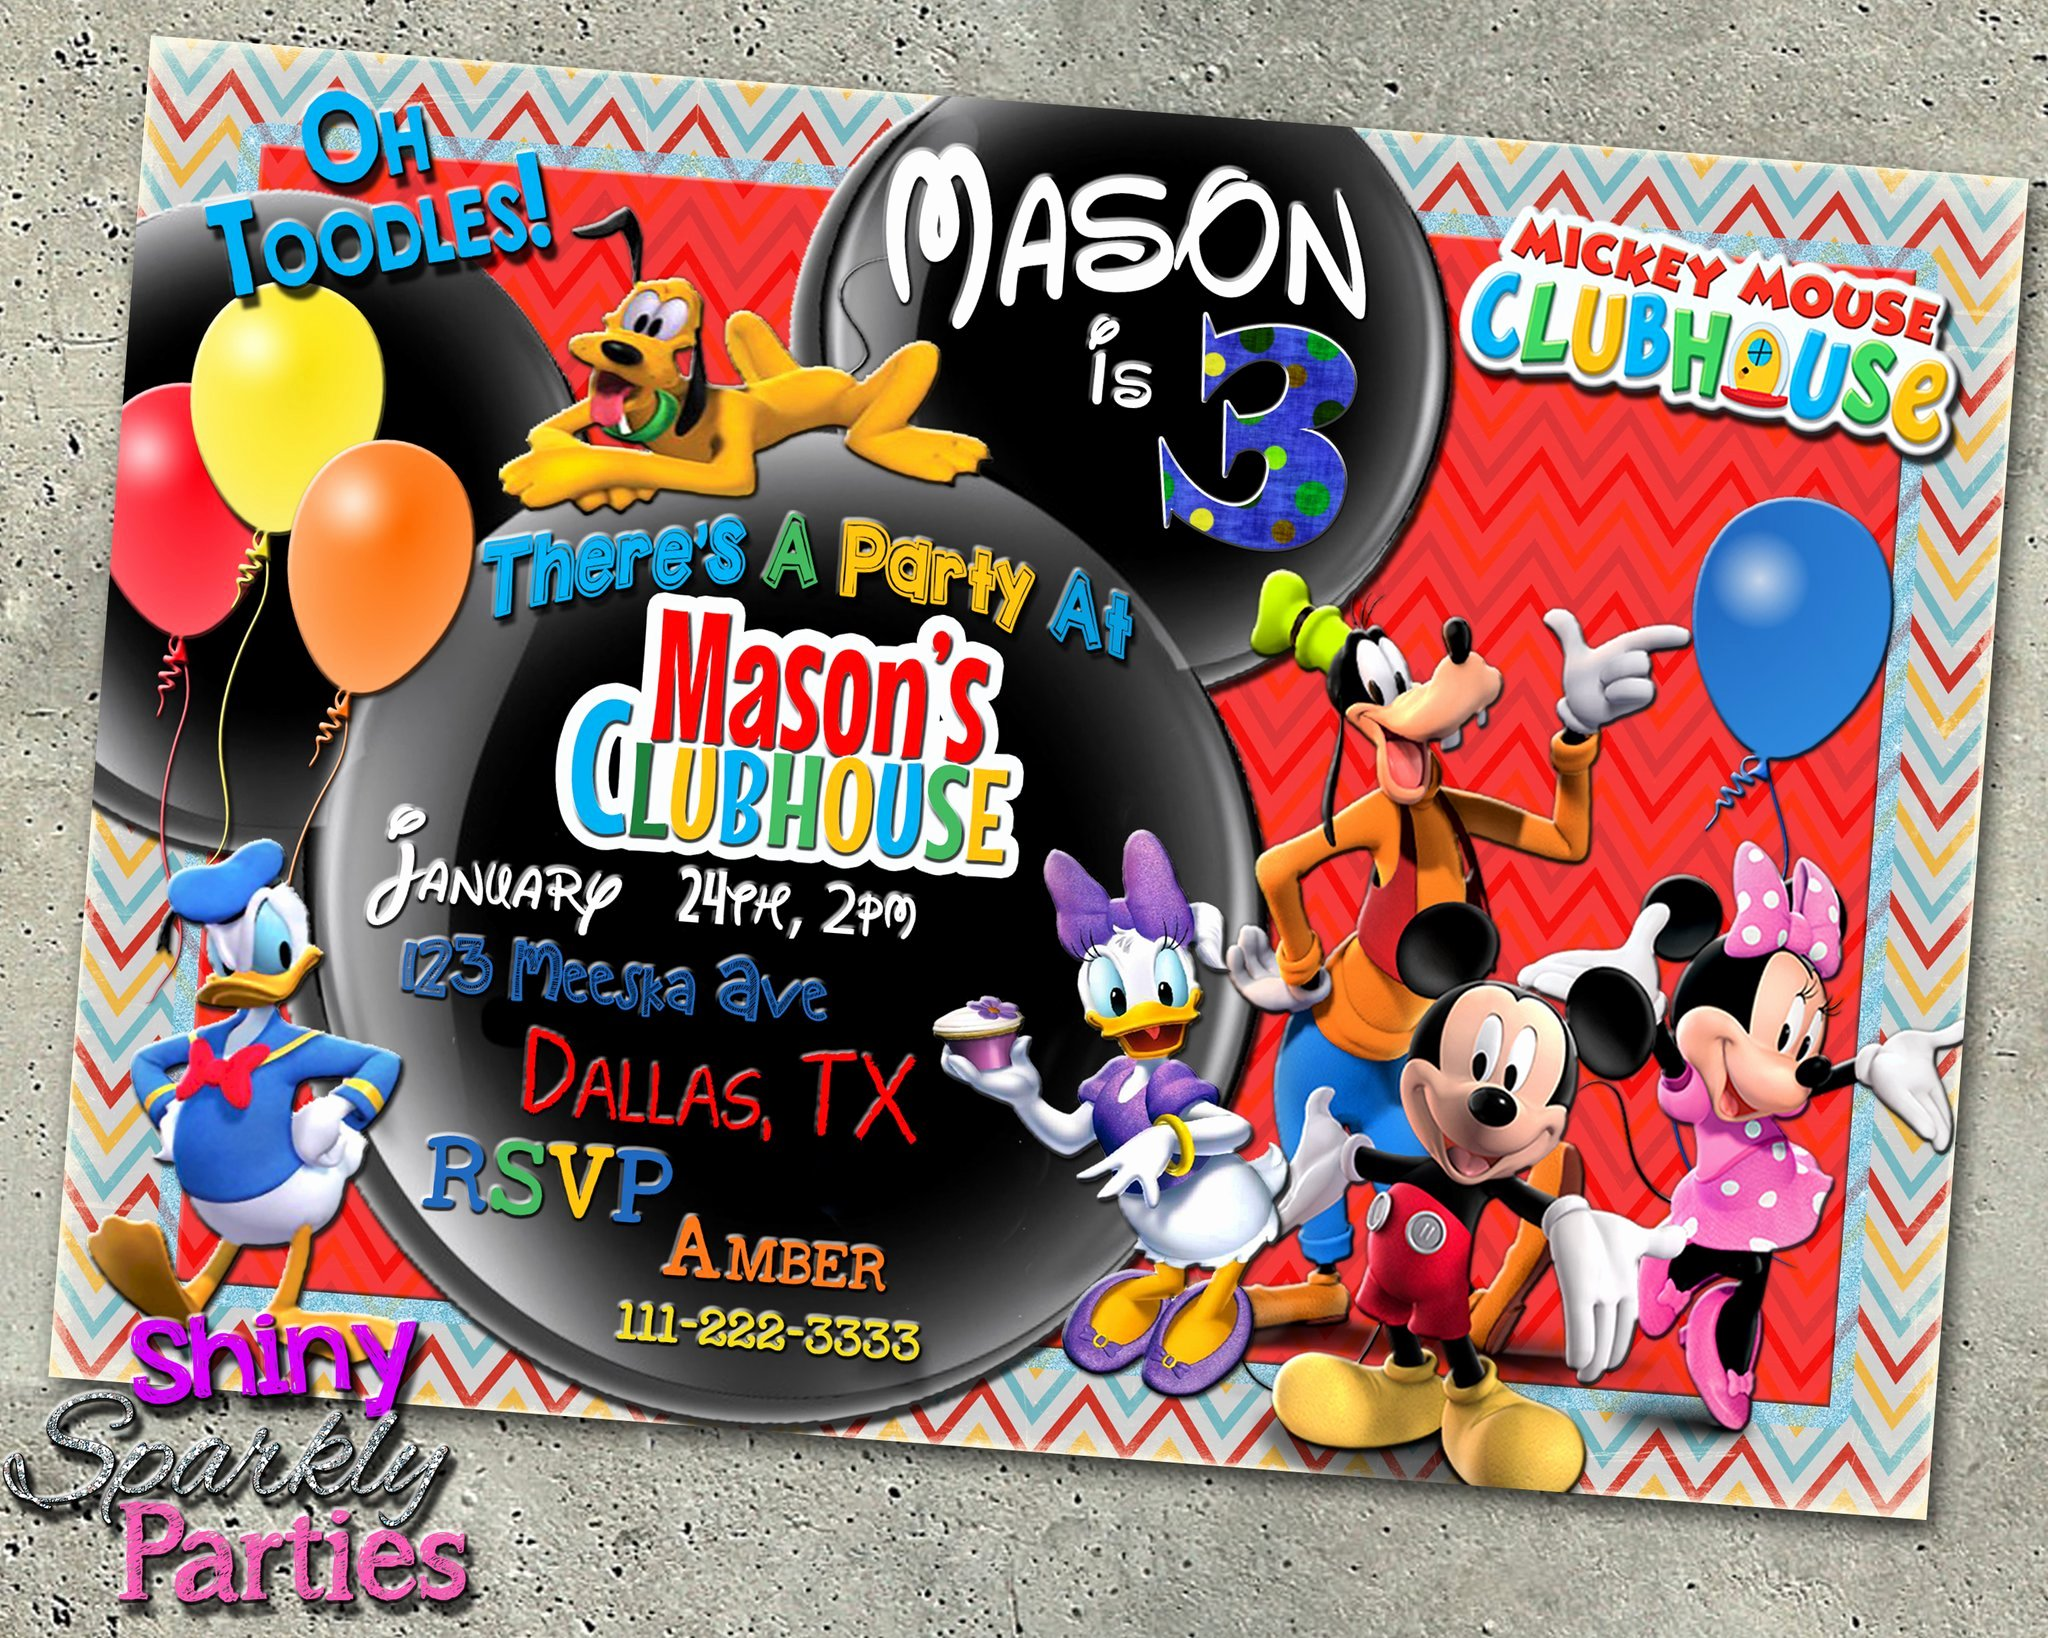 Mickey Mouse Clubhouse Invitation Template Best Of Mickey Mouse Clubhouse Birthday Invitation forever Fab